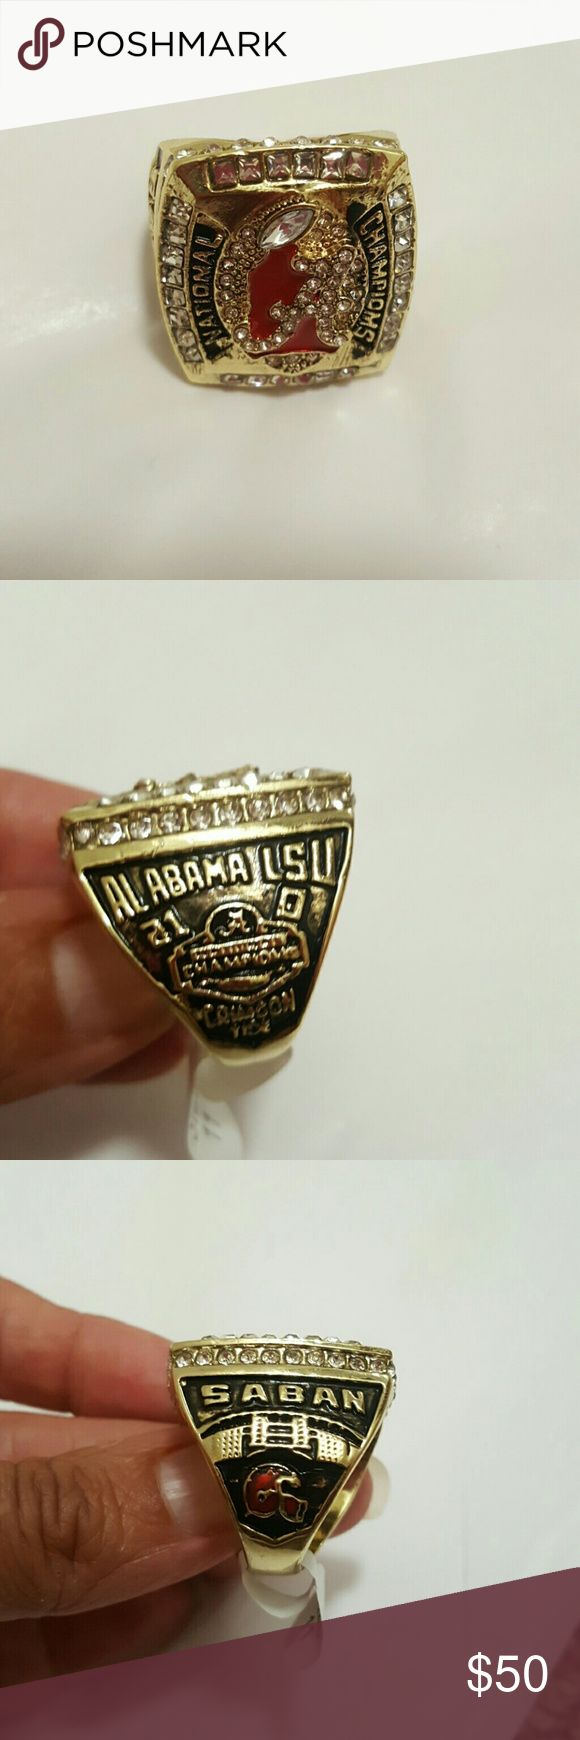 Alabama Crimson Tide Ring 2011 Alabama Crimson Tide National Championship Ring.....Yellow Gold Filled Accessories Jewelry